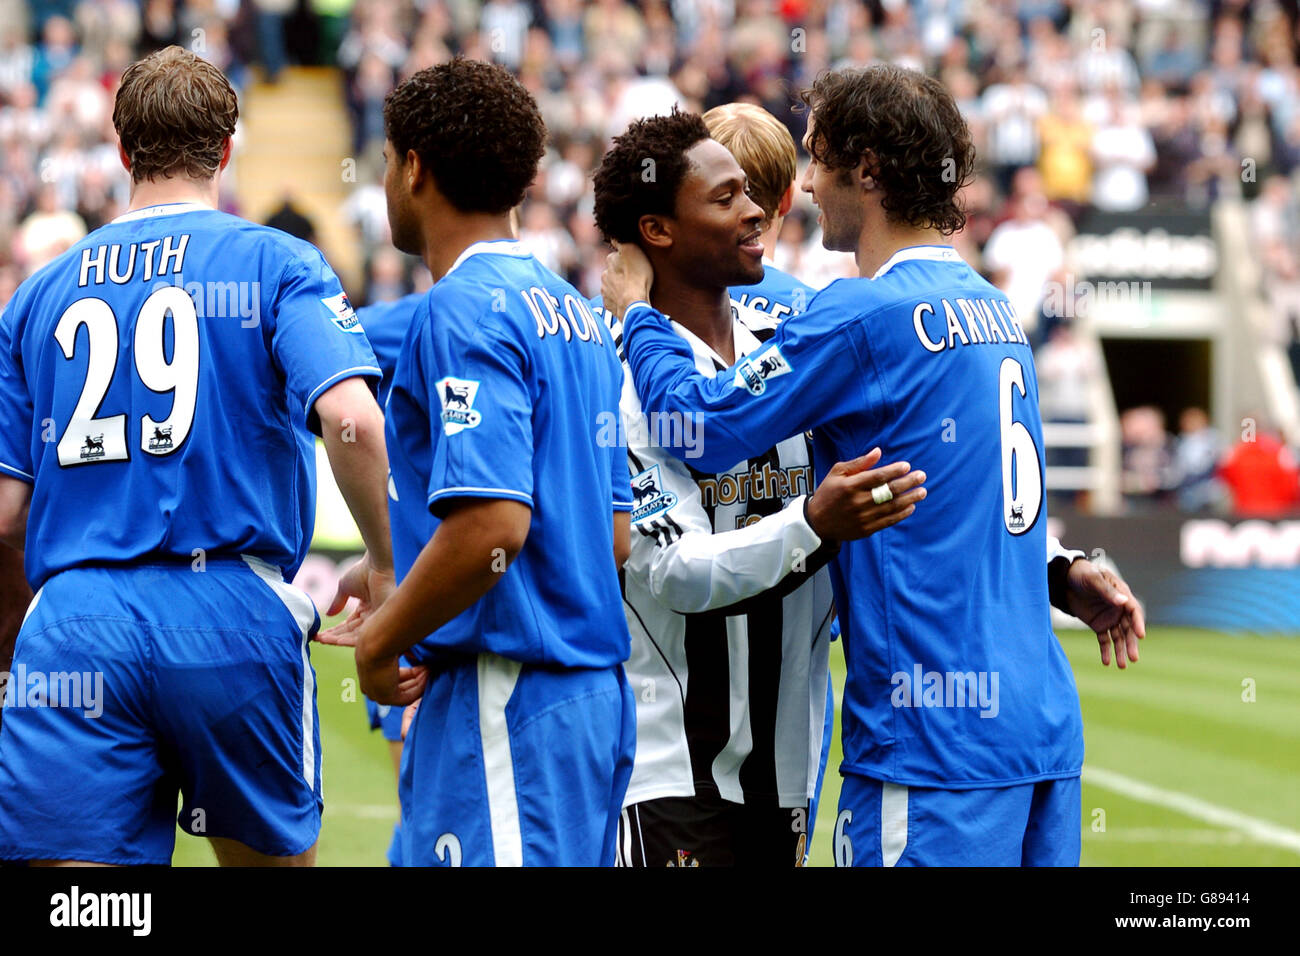 Soccer - FA Barclays Premiership - Newcastle United v Chelsea - St James' Park - Stock Image